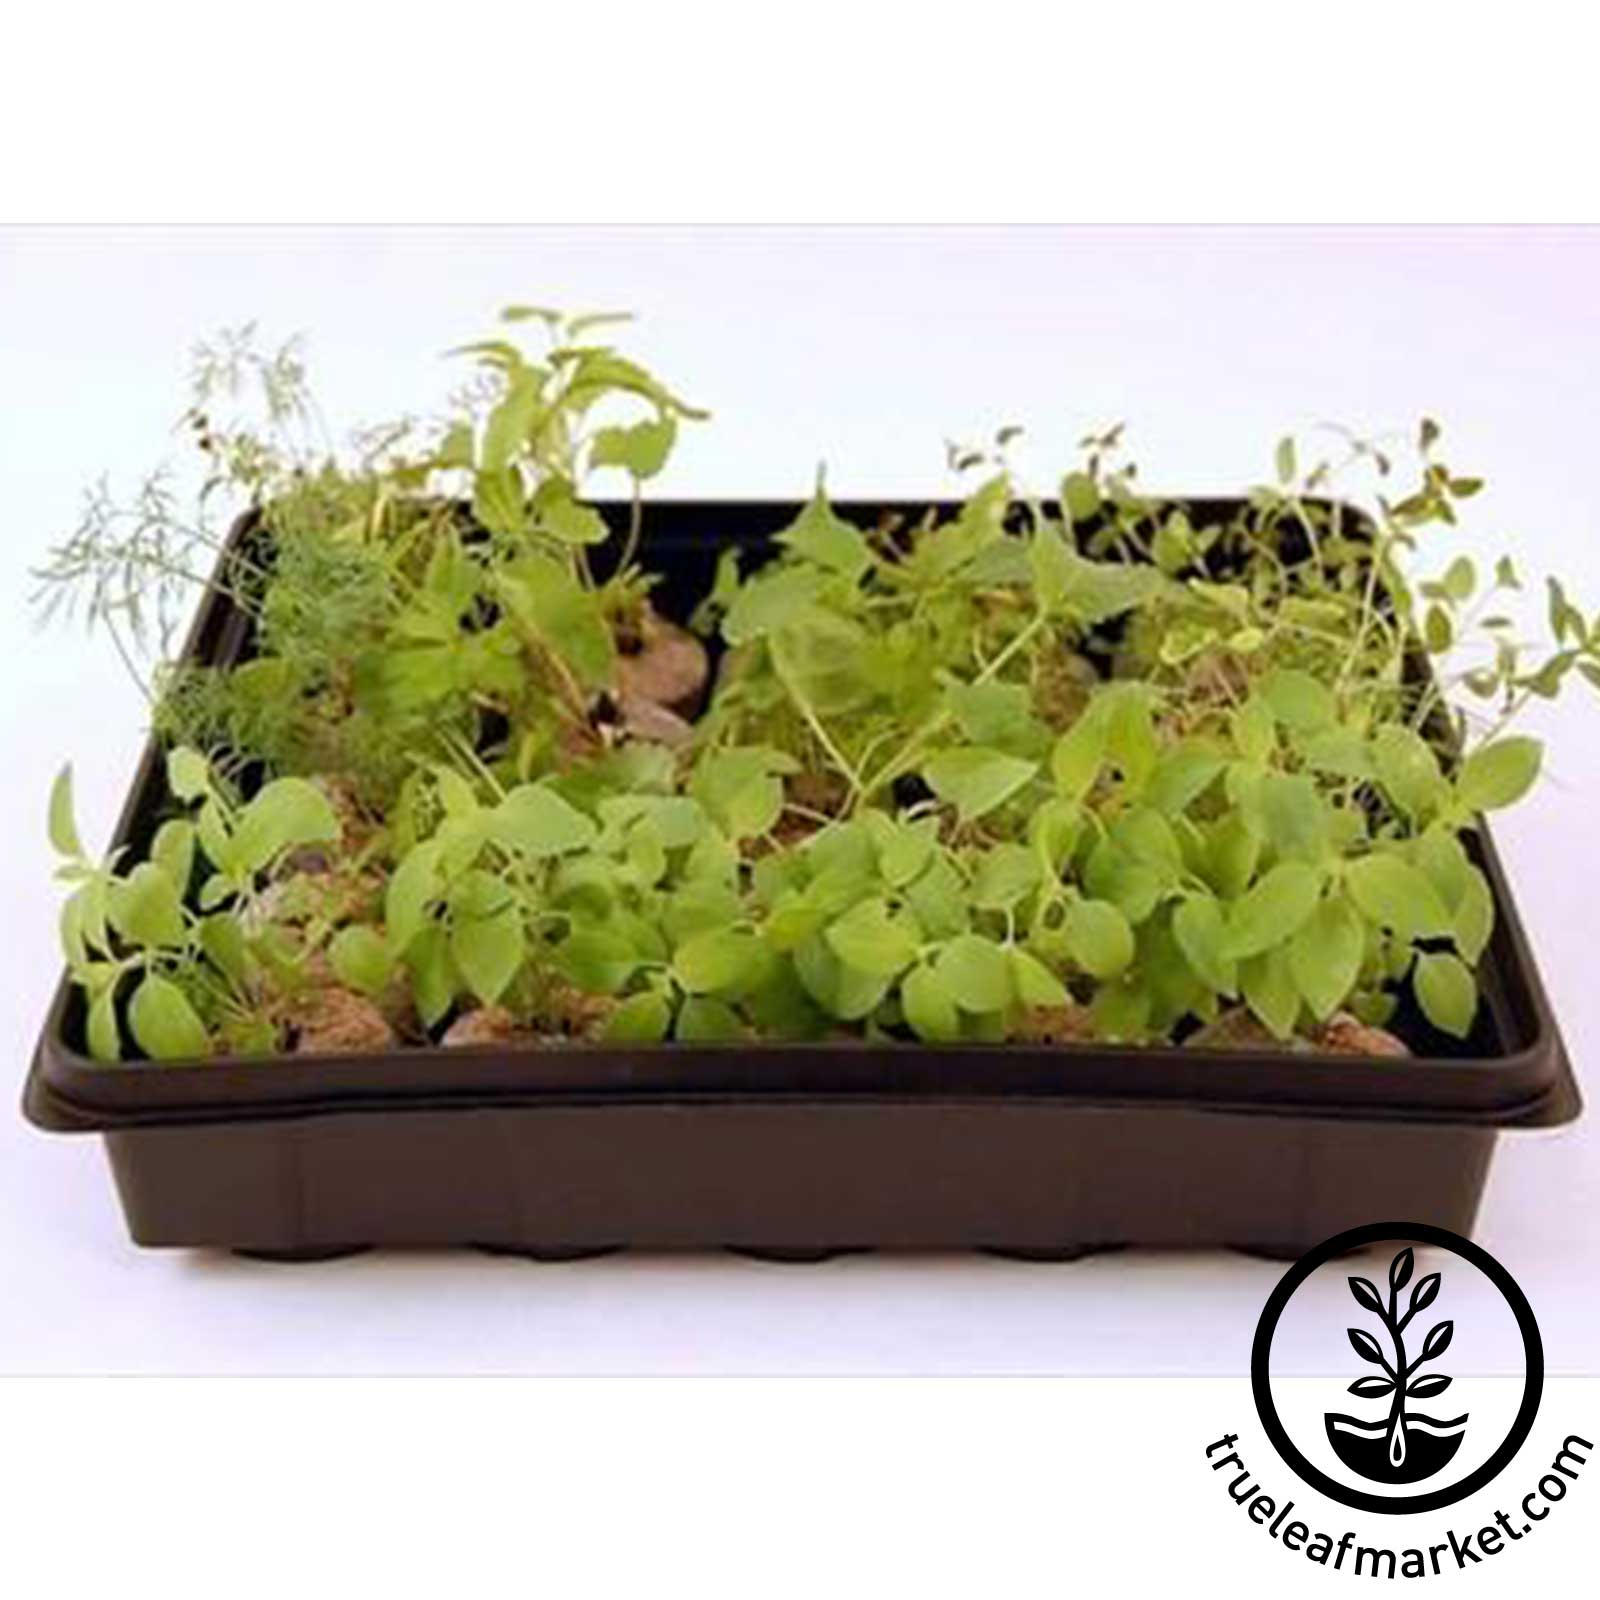 Small Plant Grow Tray with Herbs